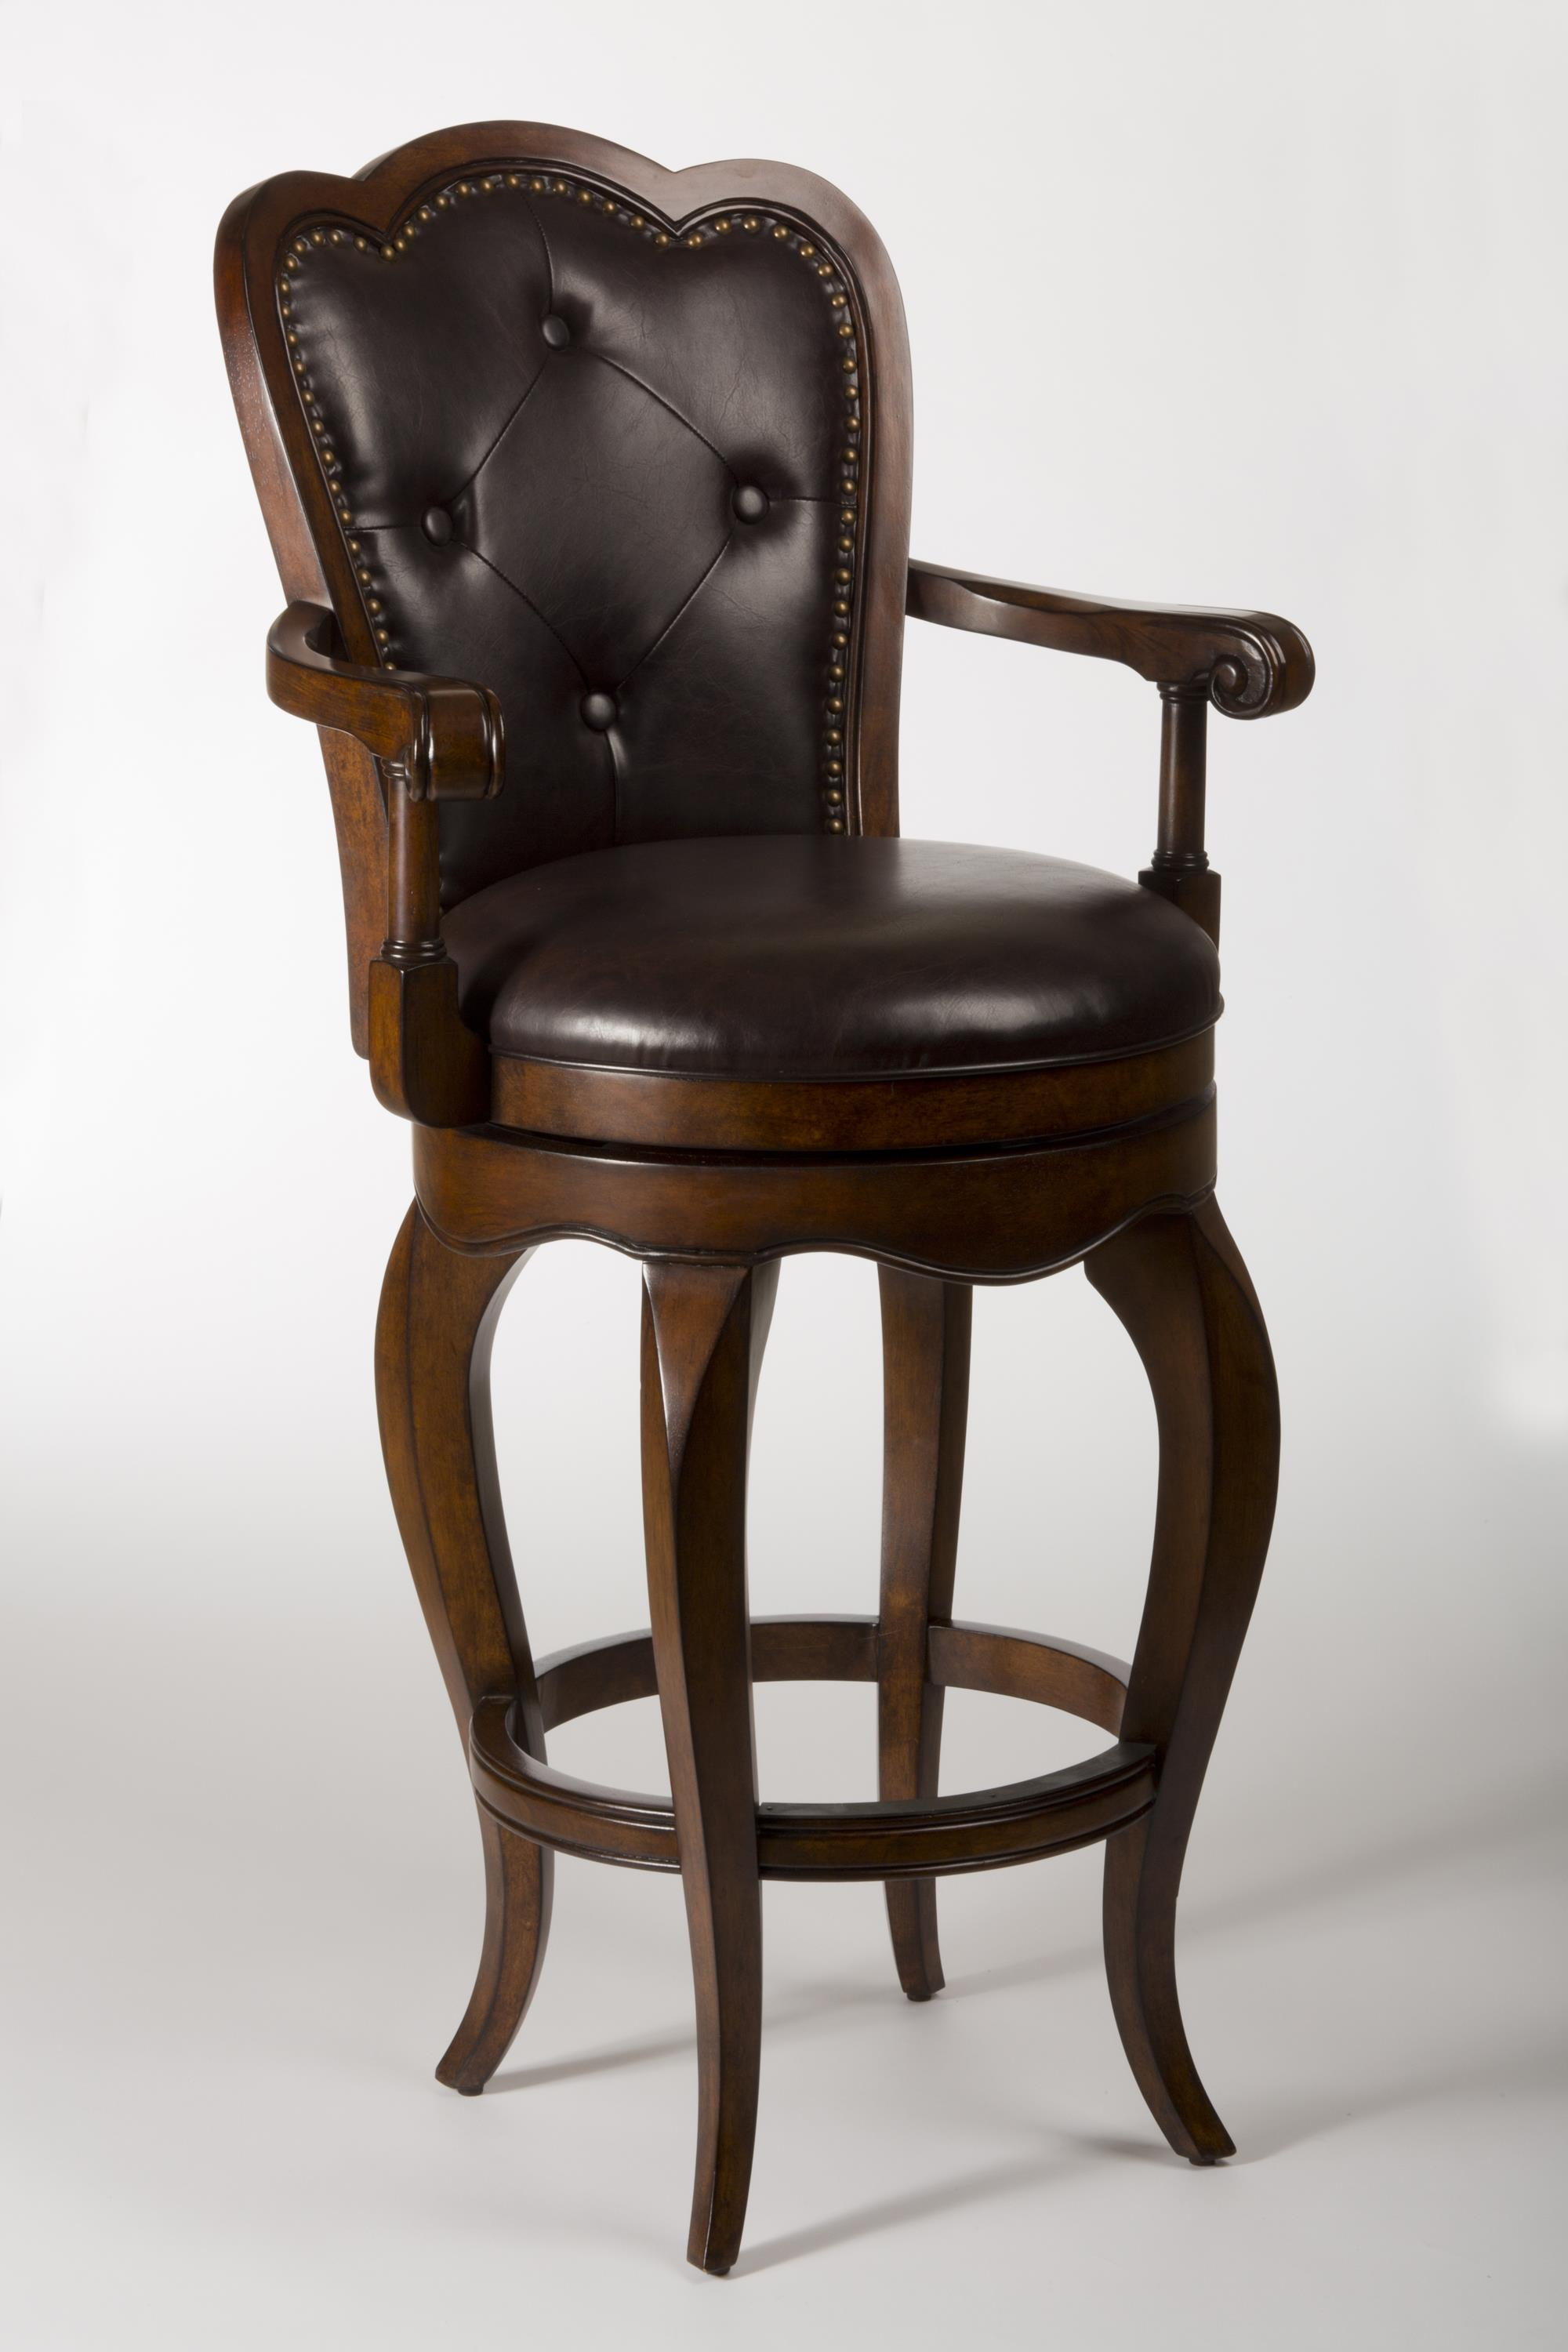 Hillsdale Wood Stools Eastwind Swivel Counter Stool With